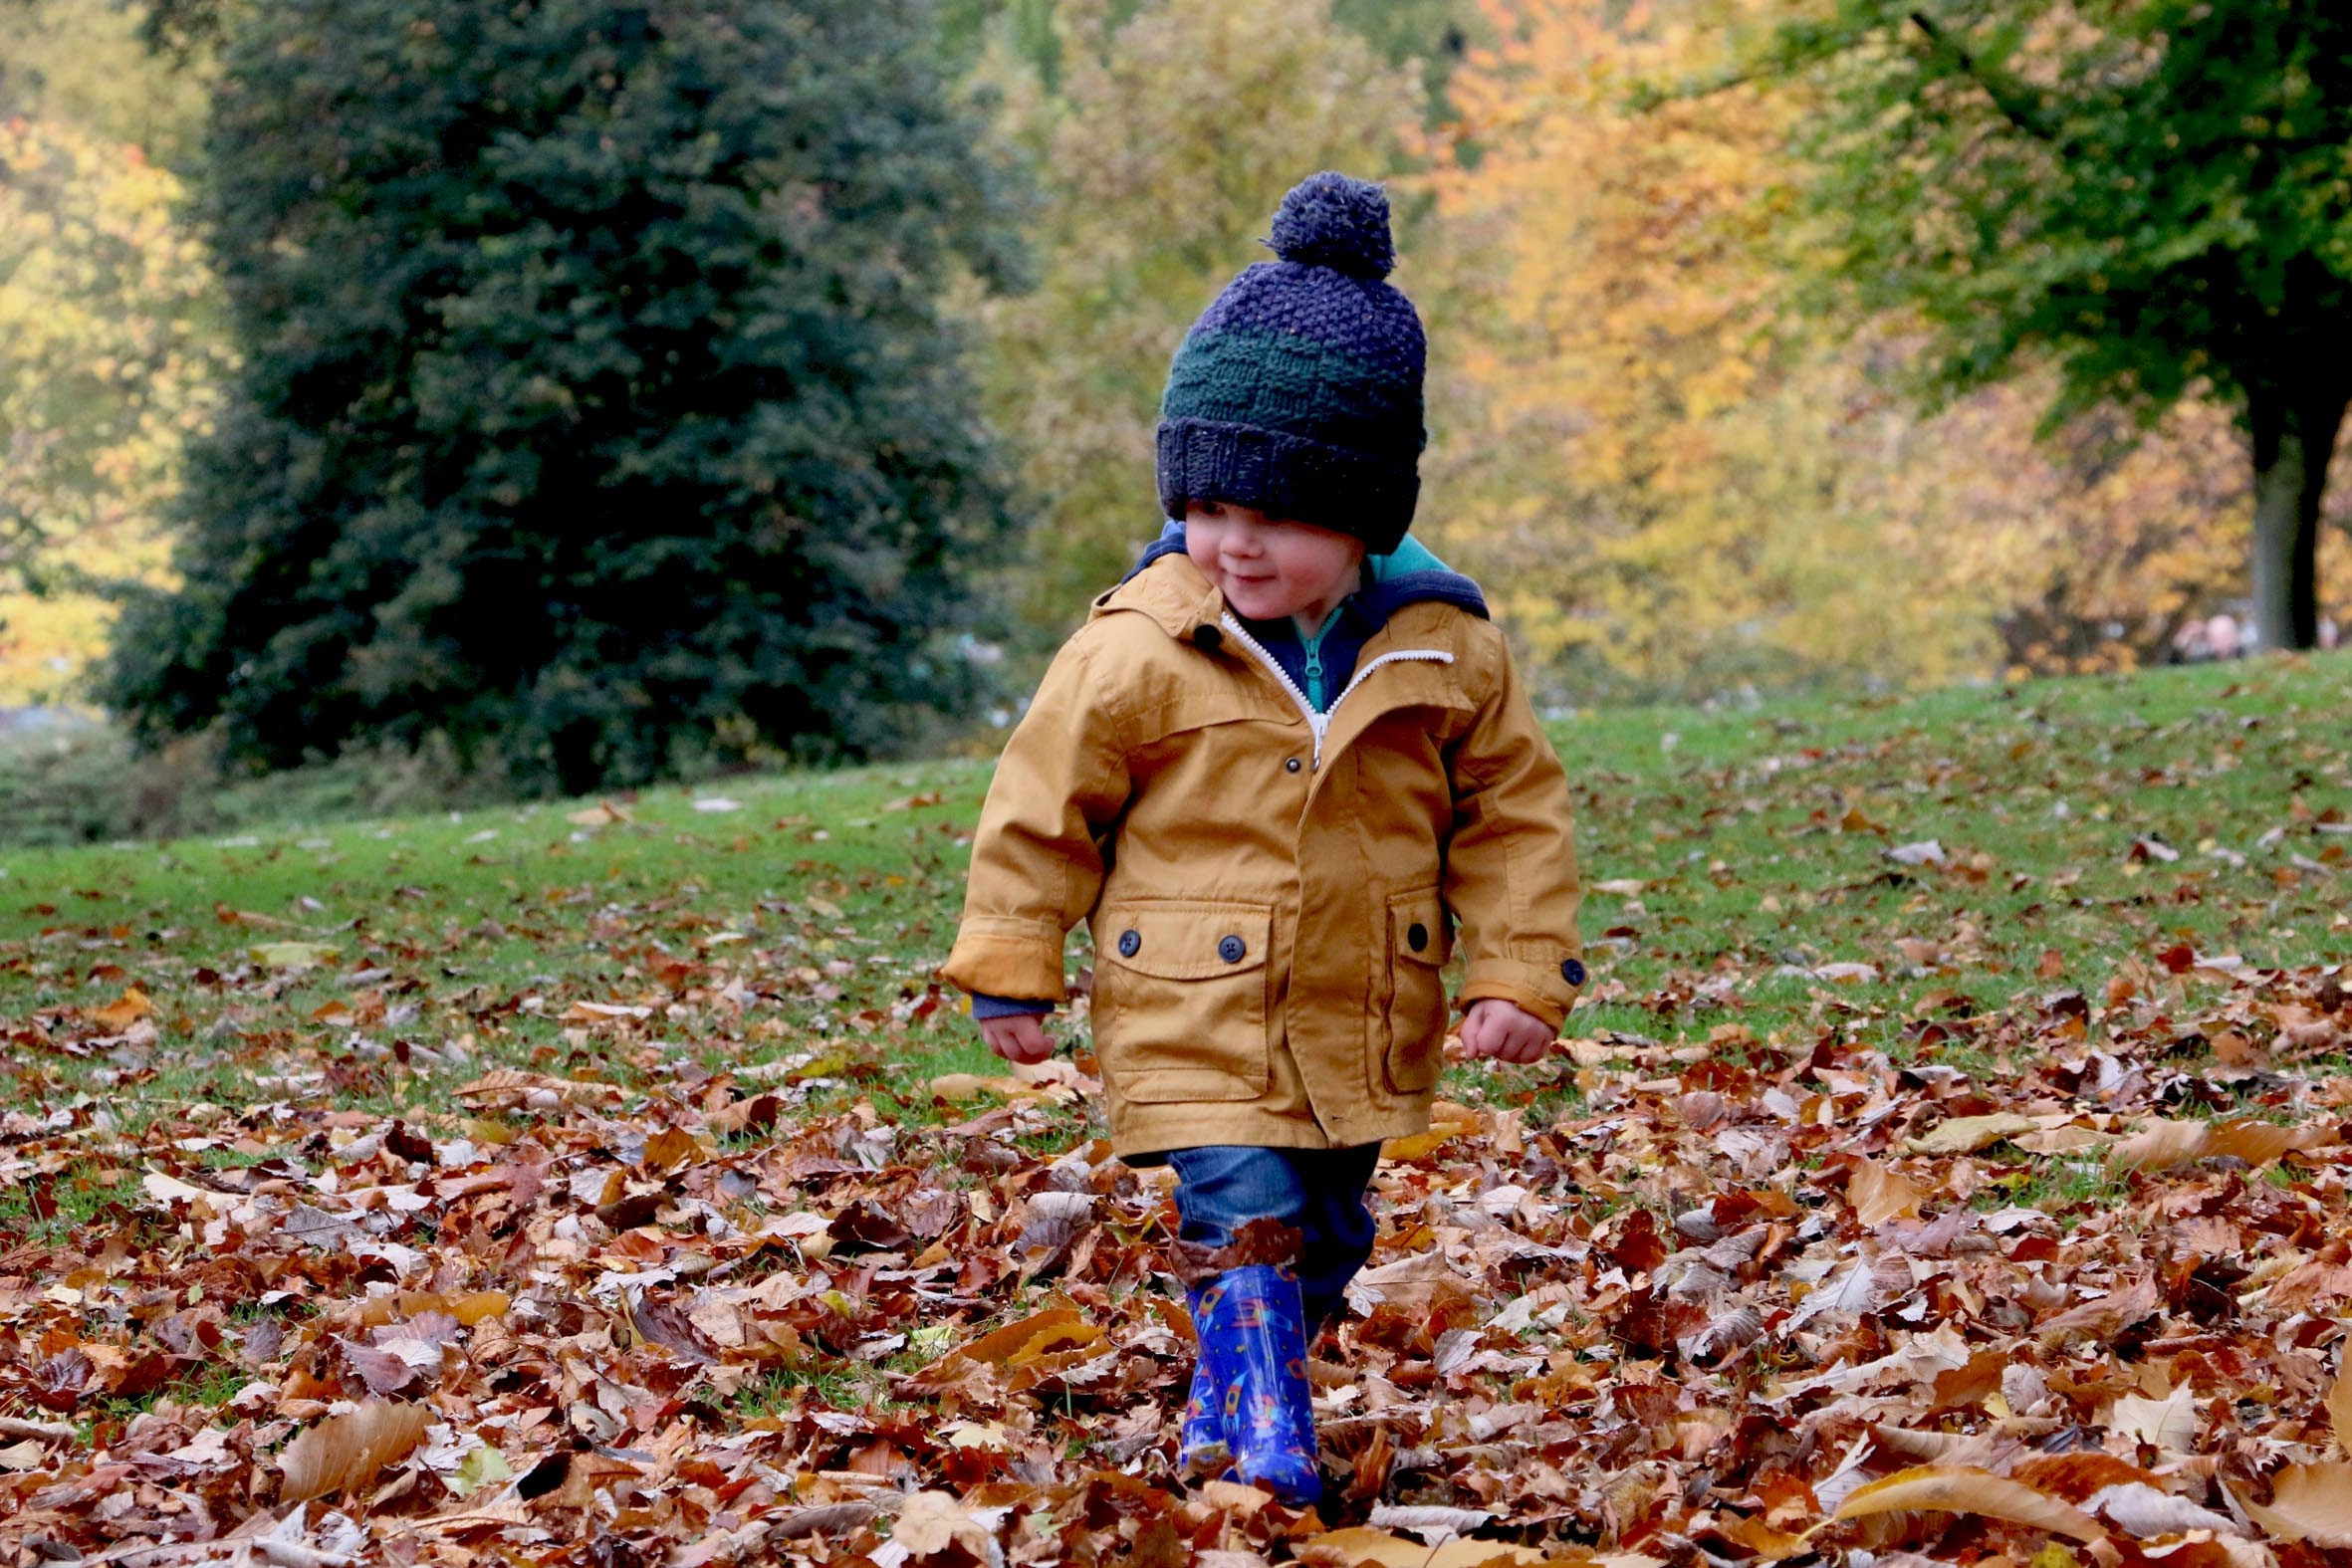 A small child wearing a hat, jacket, and wellies playing in the leaves during autumn in Bretton